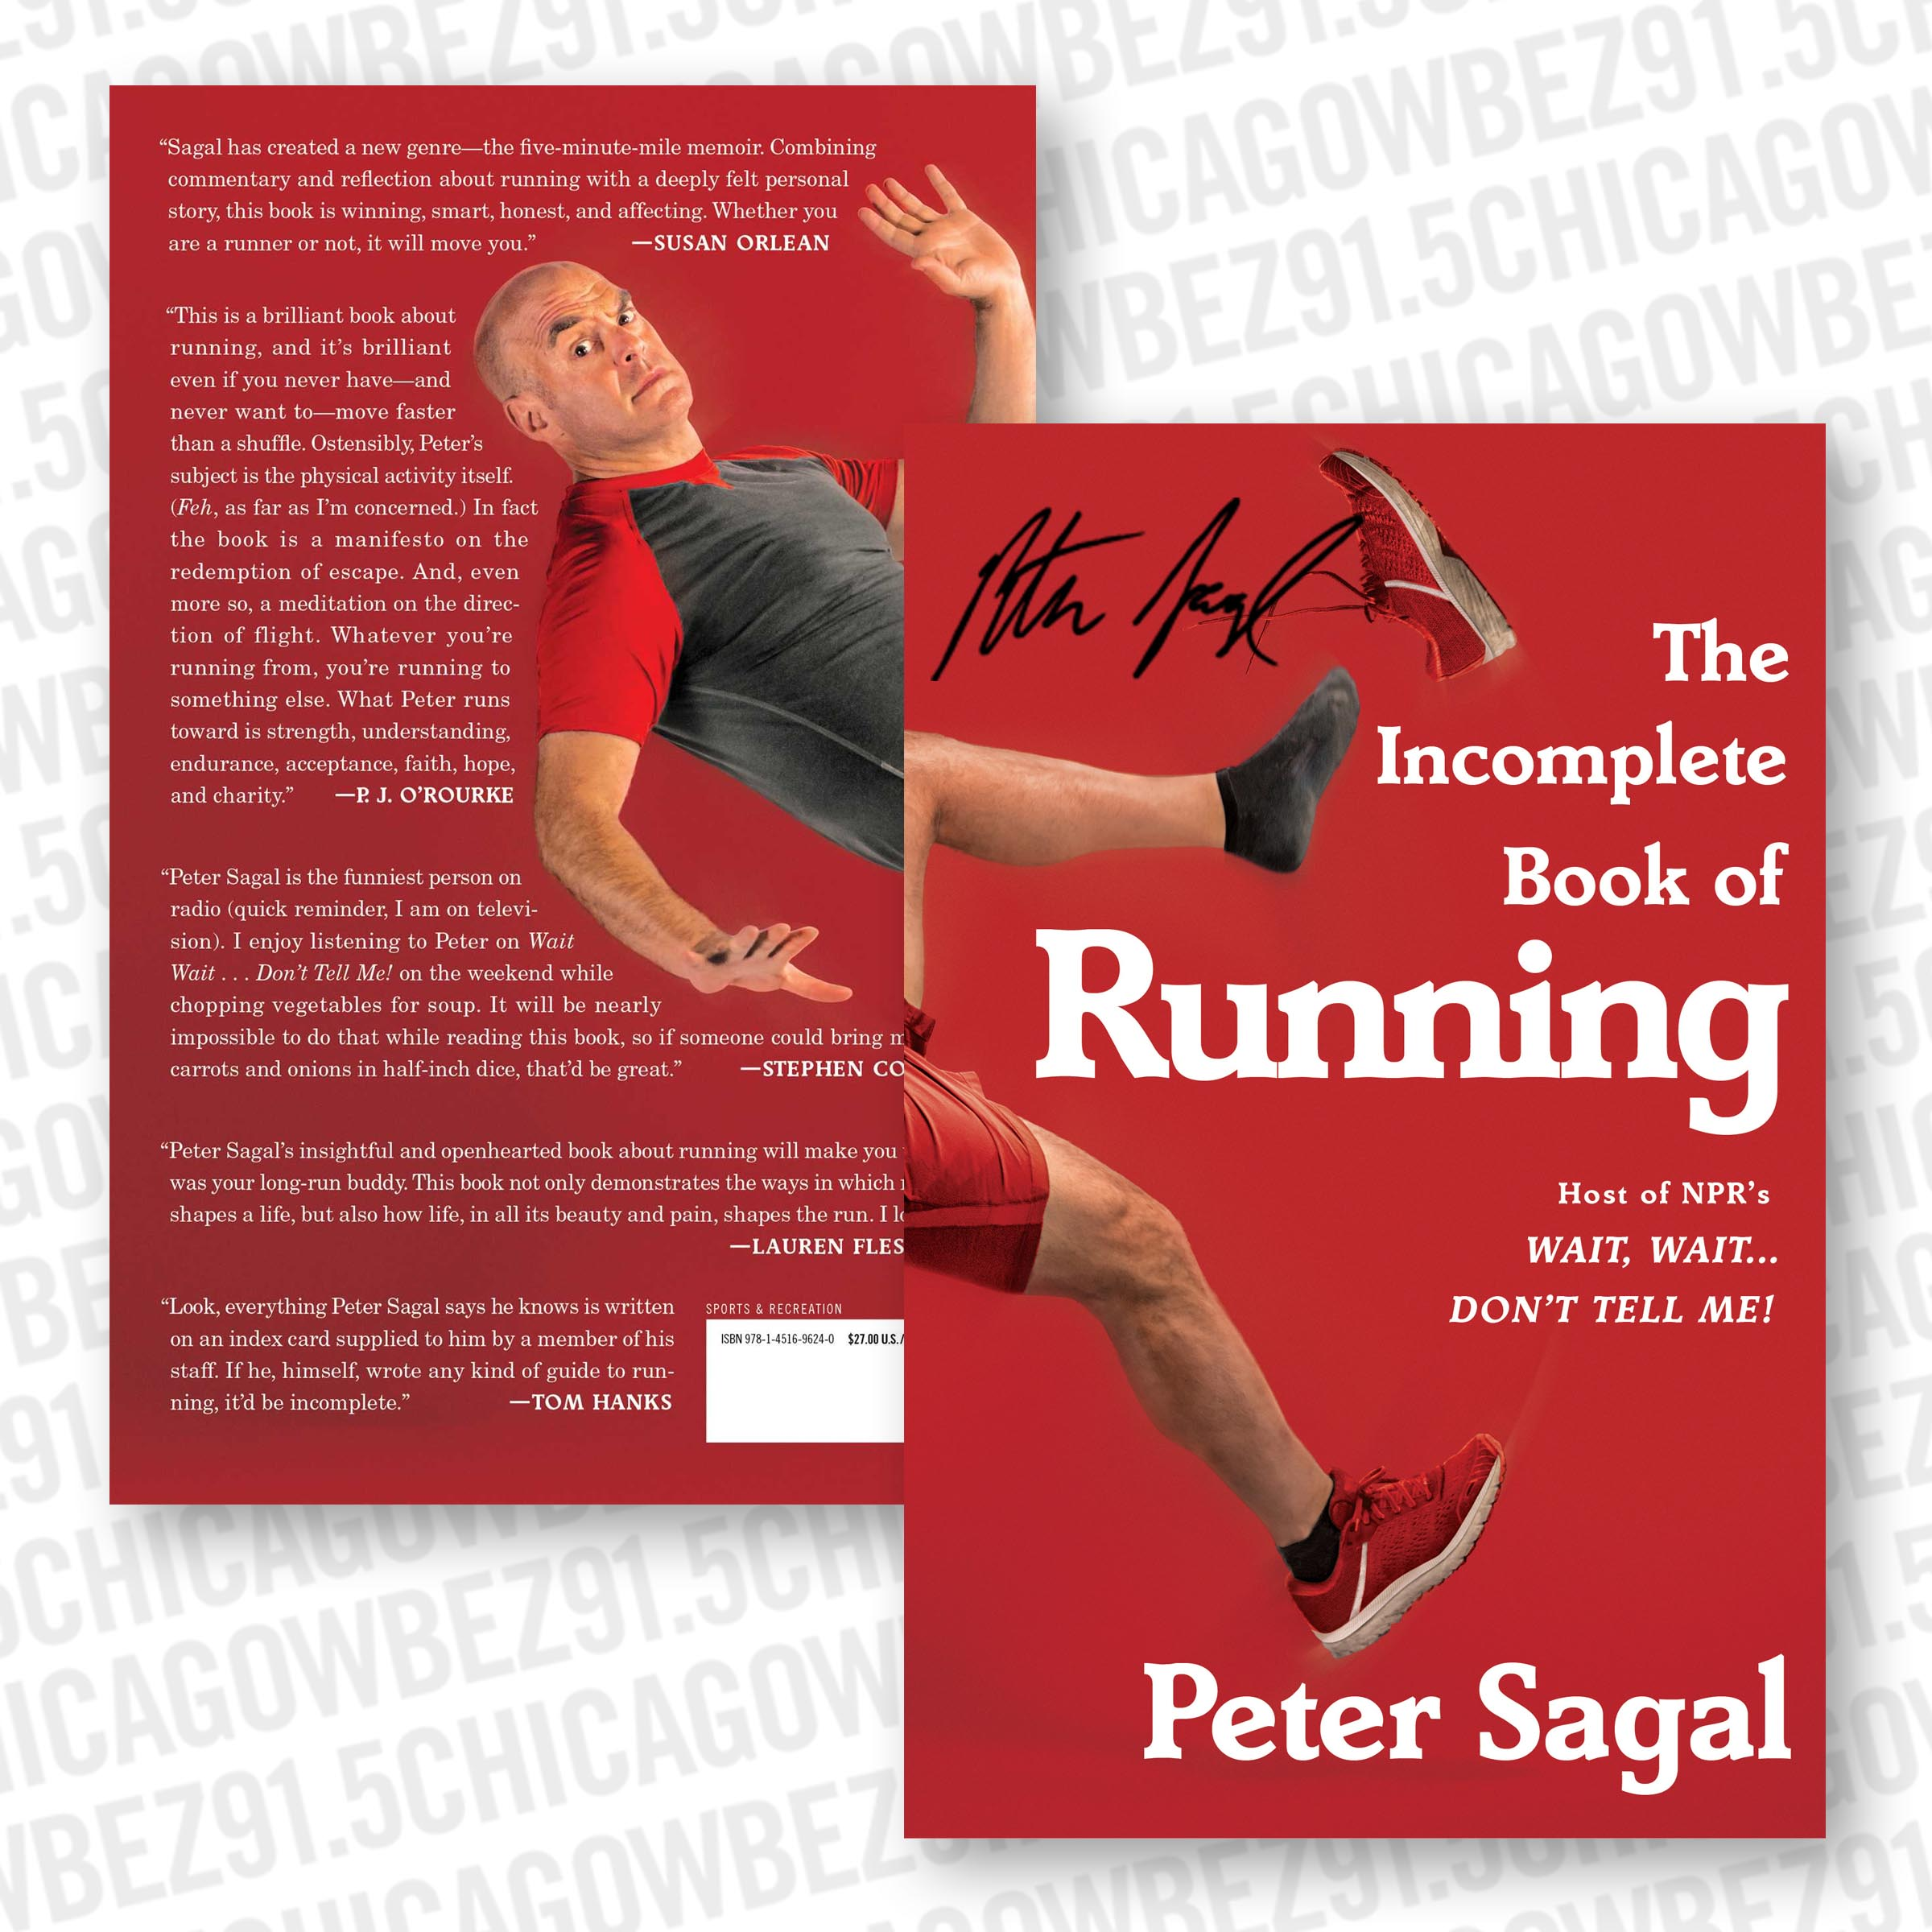 Signed Copy of The Incomplete Book of Running